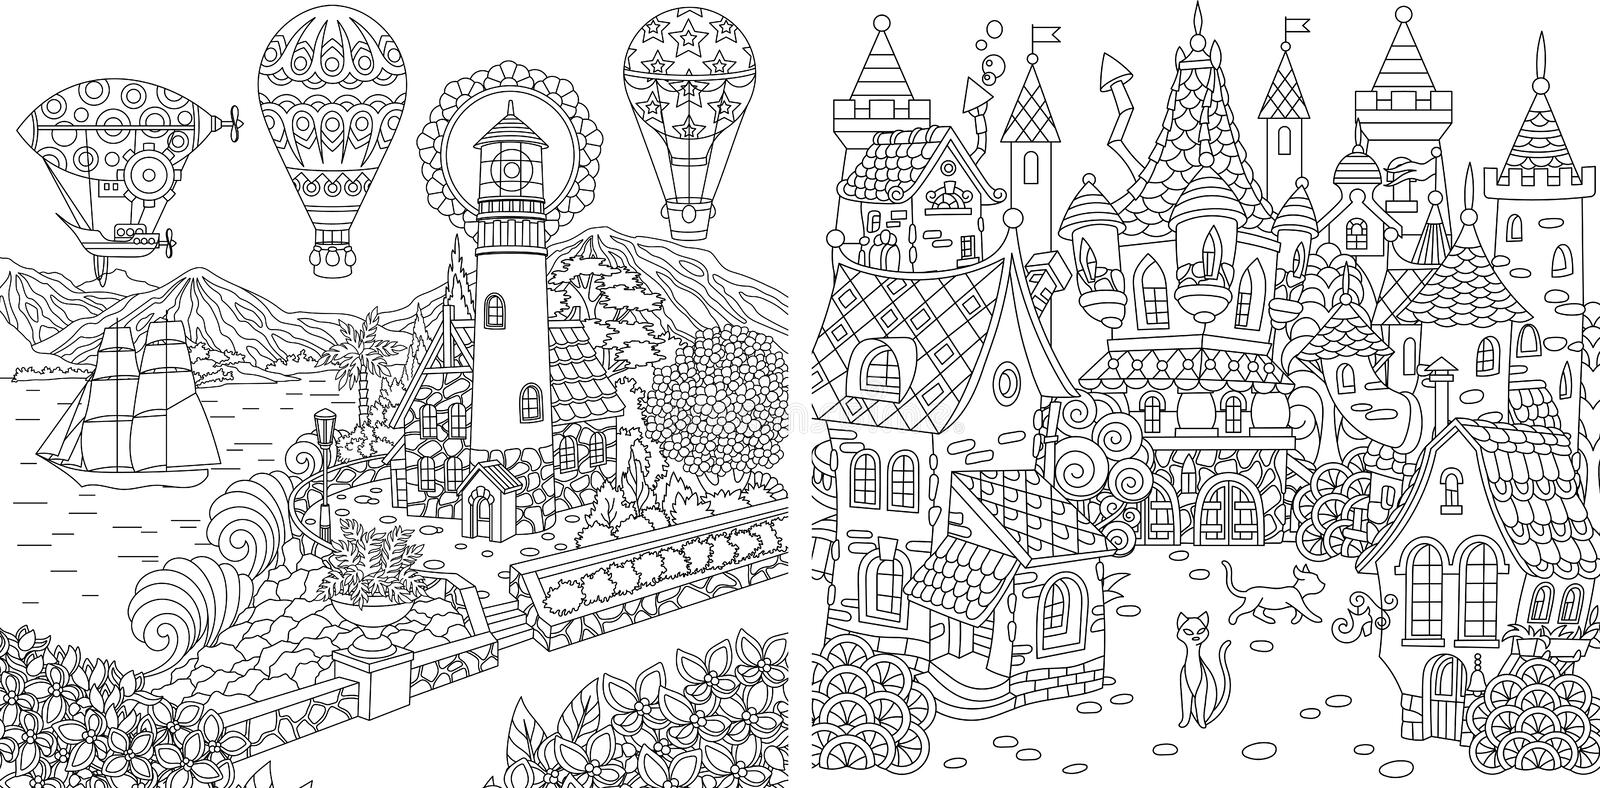 Coloring Pages. Coloring Book for adults. Colouring pictures with light house and fairy tale castle. Antistress freehand sketch stock image